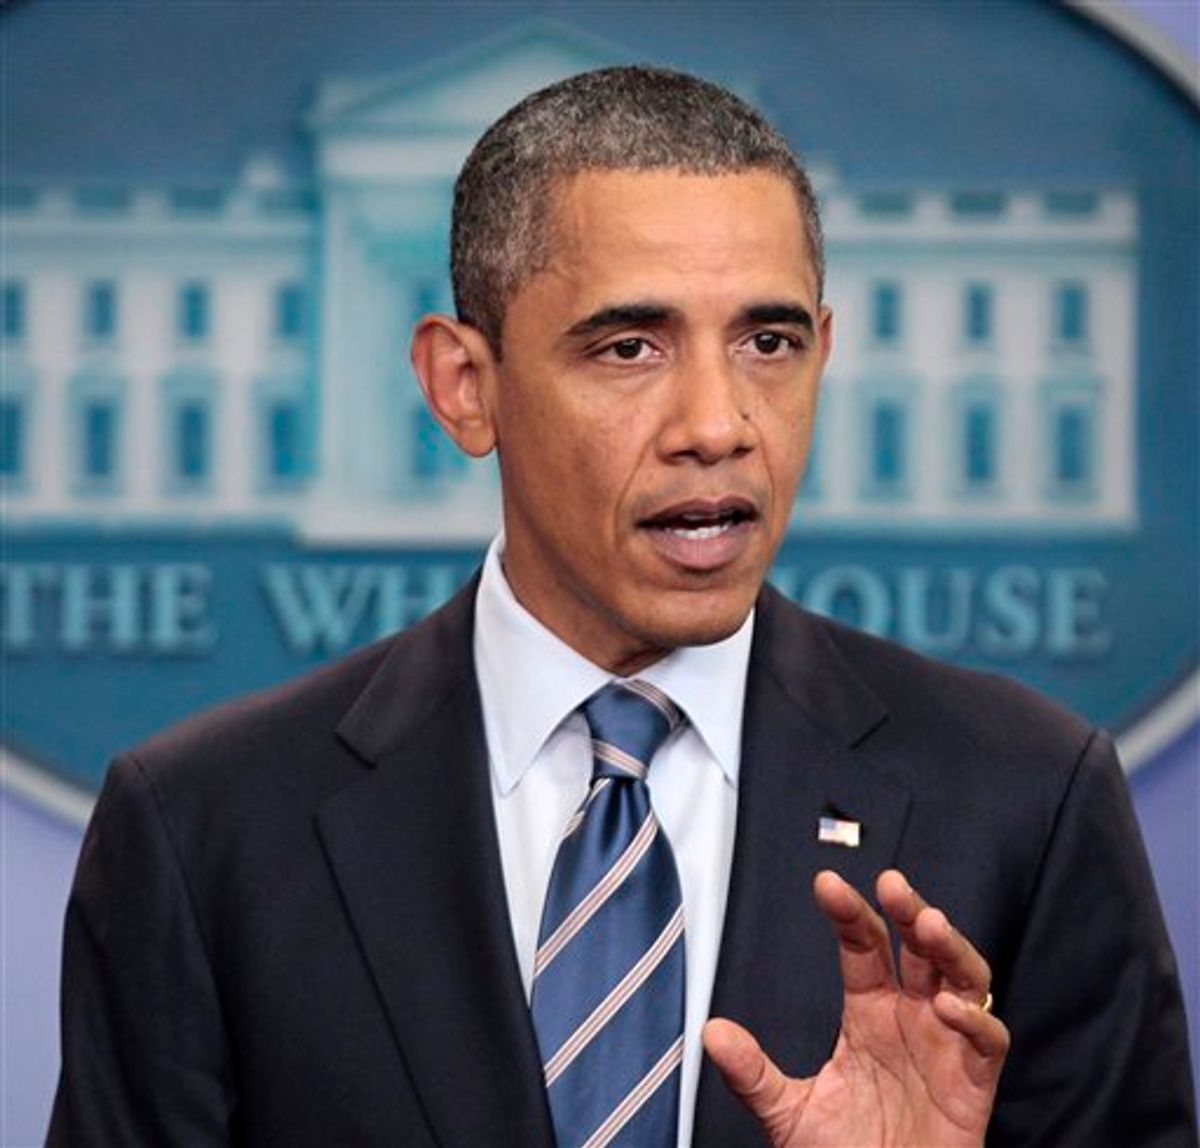 President Barack Obama talks about the ongoing budget negotiations, Thursday, July, 7, 2011, in the briefing room at the White House in Washington.(AP Photo/Pablo Martinez Monsivais) (AP)